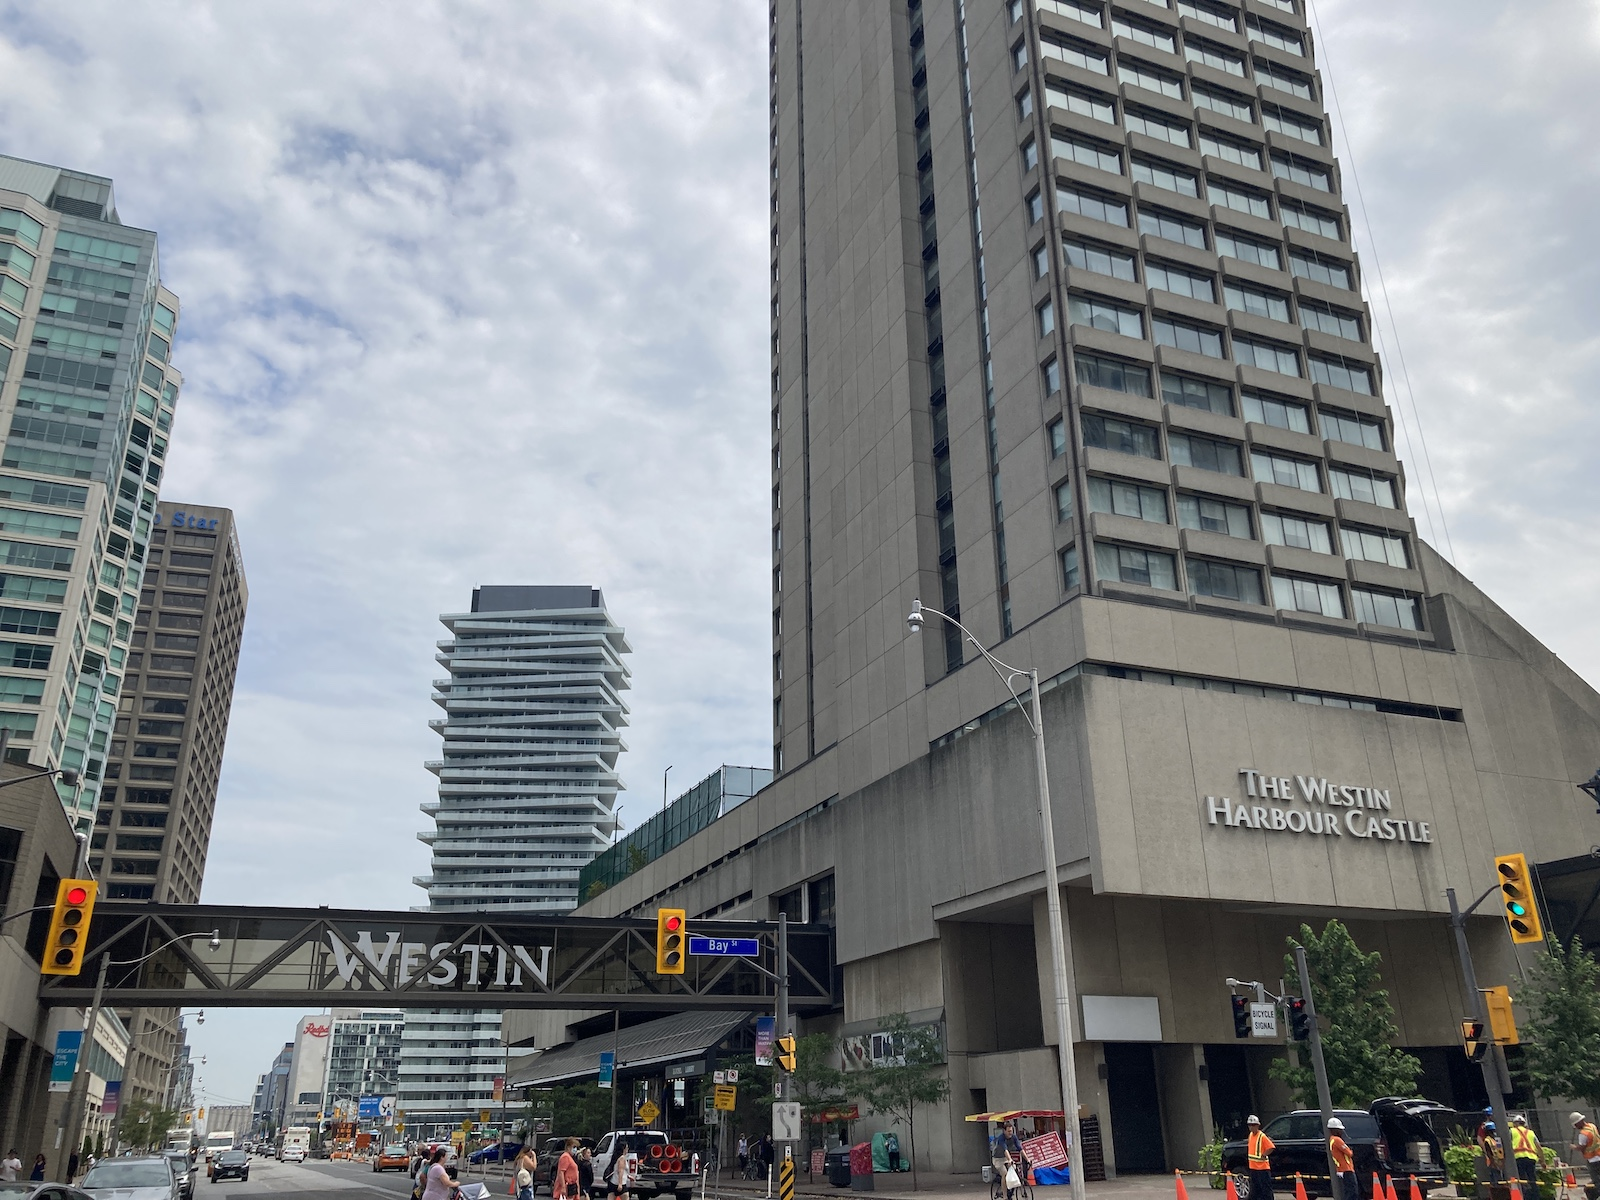 Westin Harbour Castle Toronto Review – It Needs Some Work